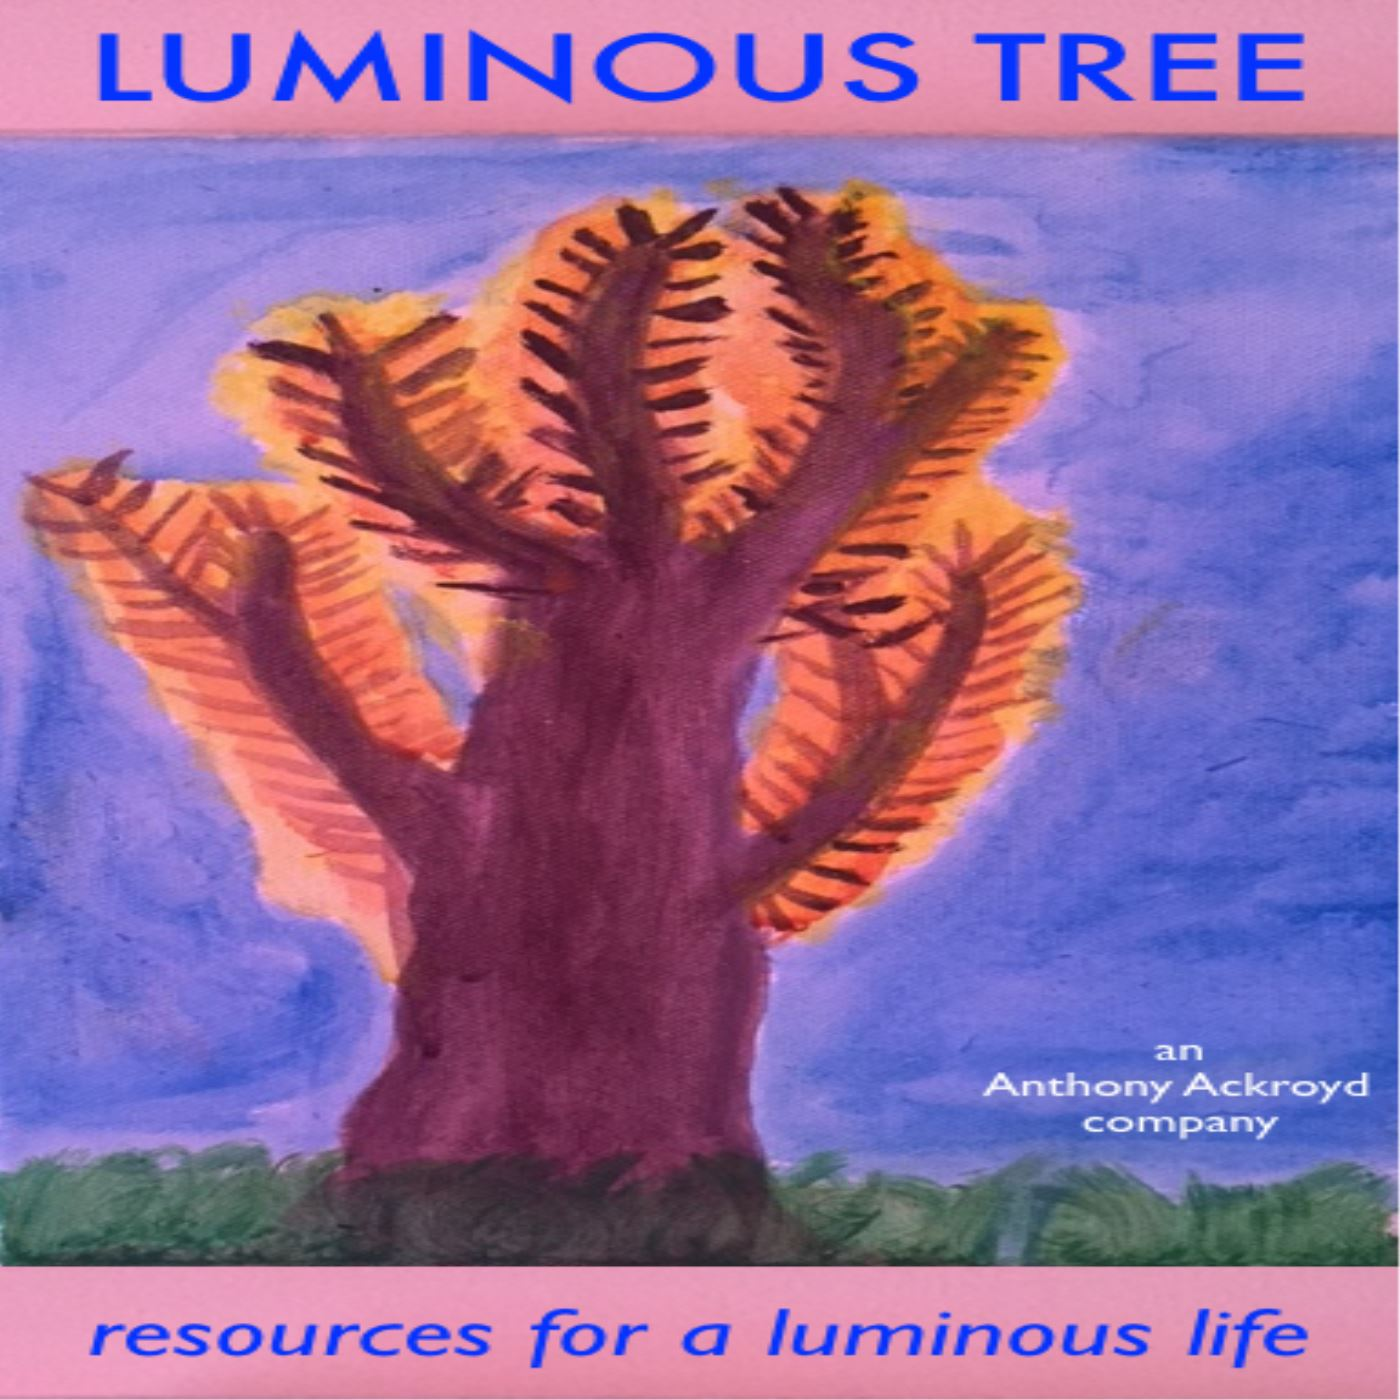 Luminous Tree - resources for a luminous life